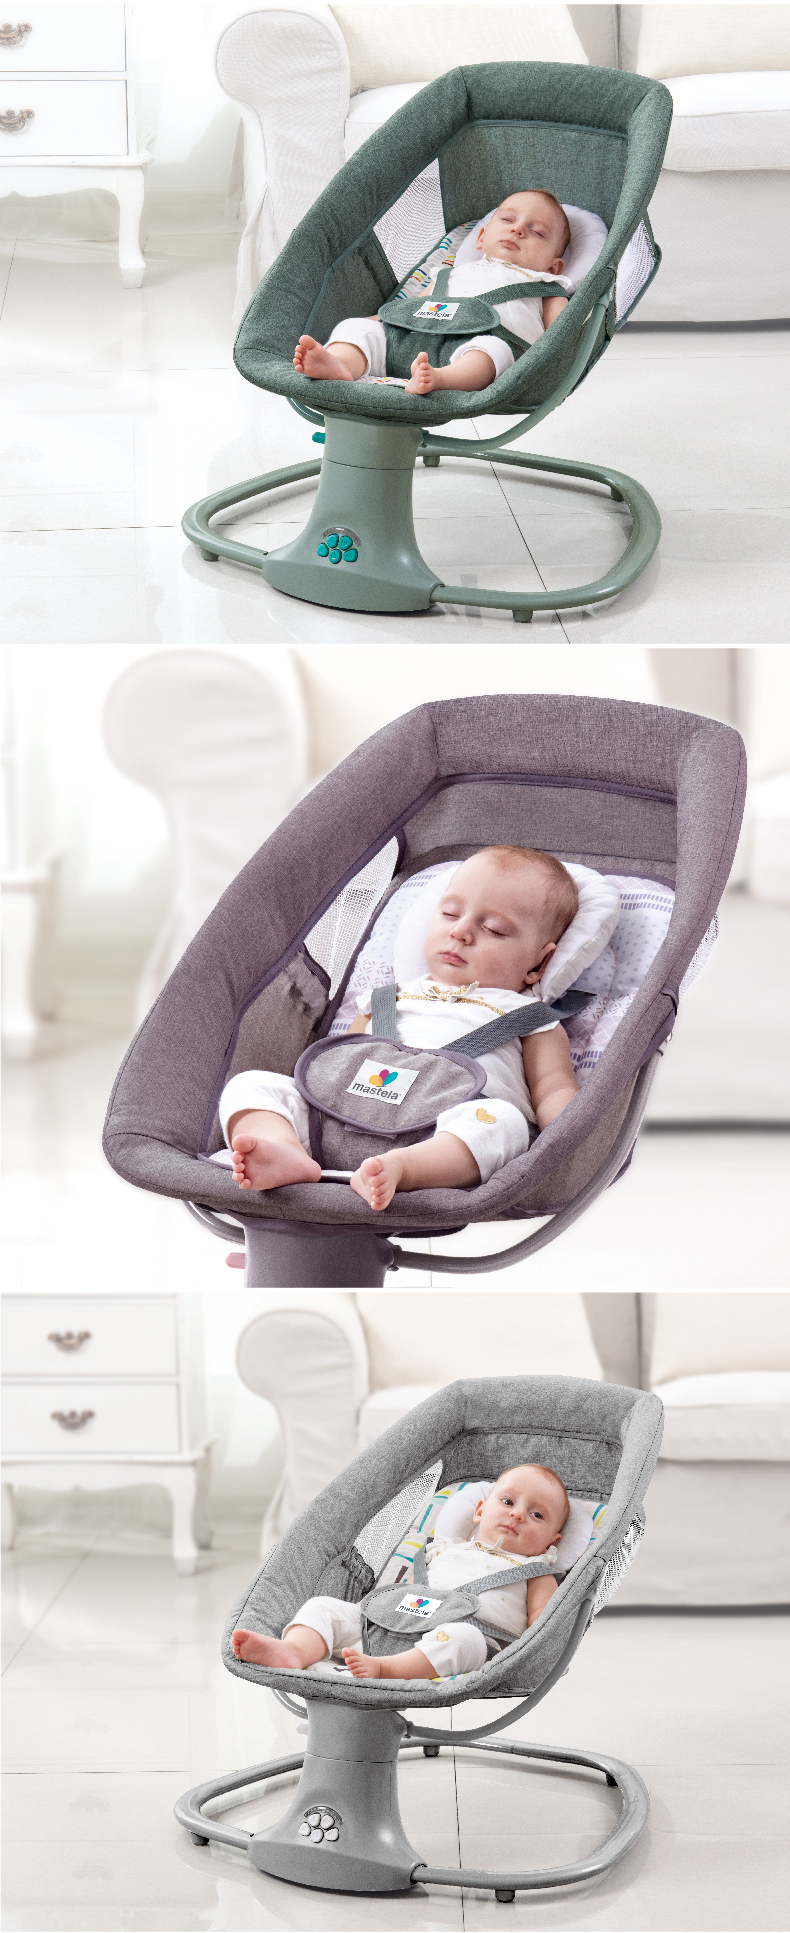 H8dcf919219fc4124b0c328f675b6b9830 Baby Electric Rocking Chair To Appease Smart Cradle To baby Sleeping Artifact Electric baby Rocking bed Swing